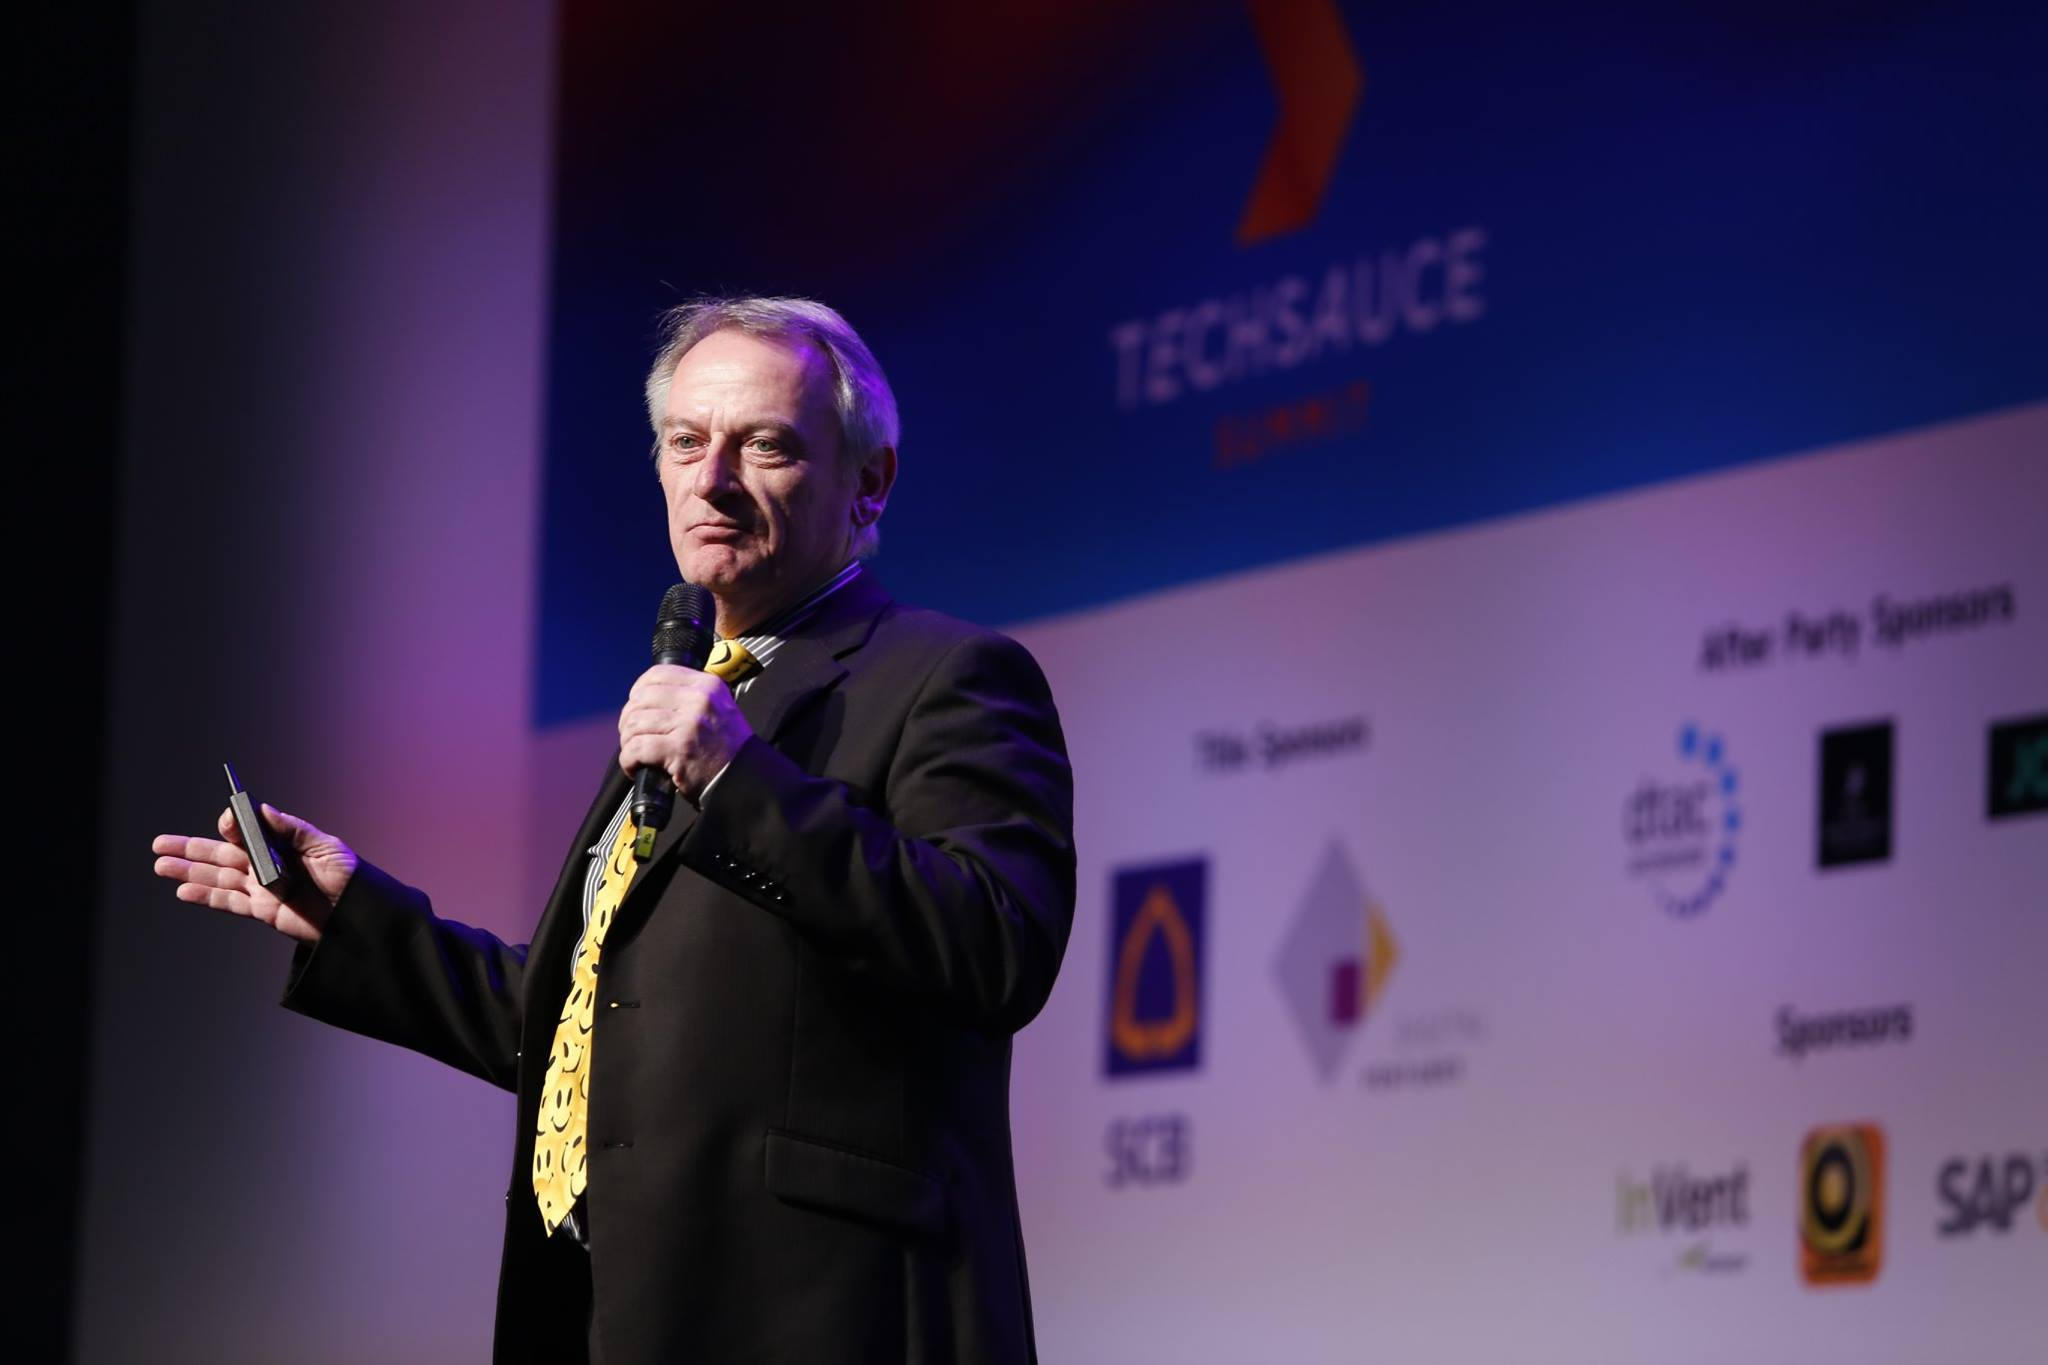 Chris_Skinner_Techsauce_Summit2